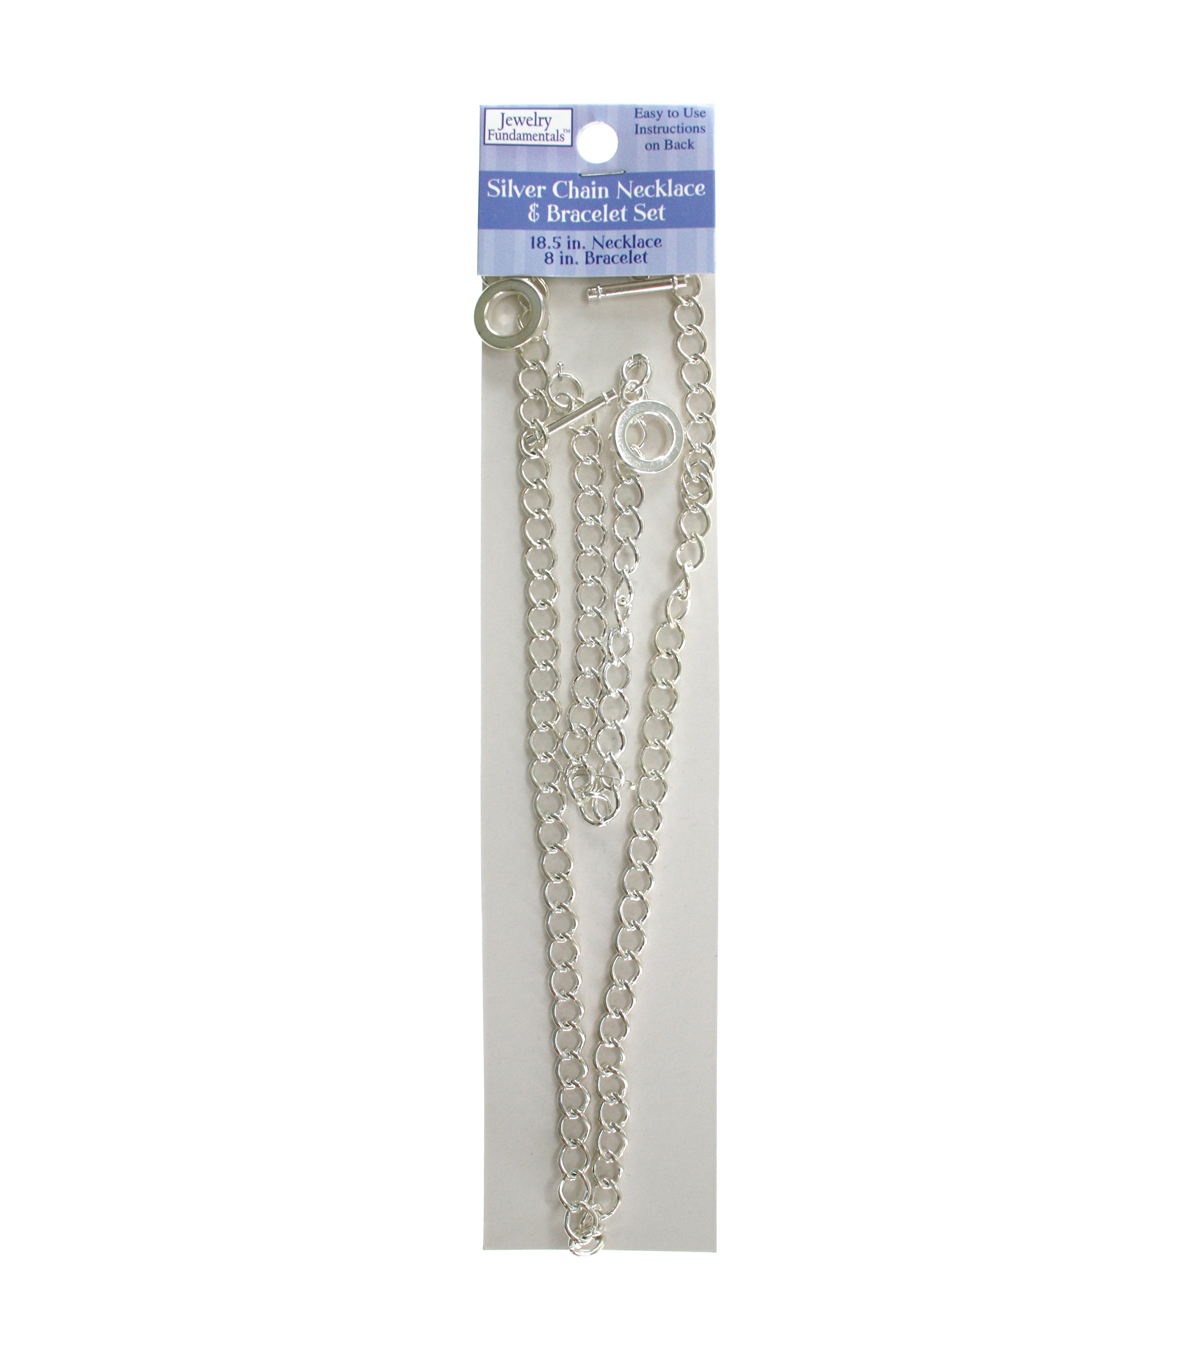 Jewelry Fundamentals Silver Chain Necklace and Bracelet Set